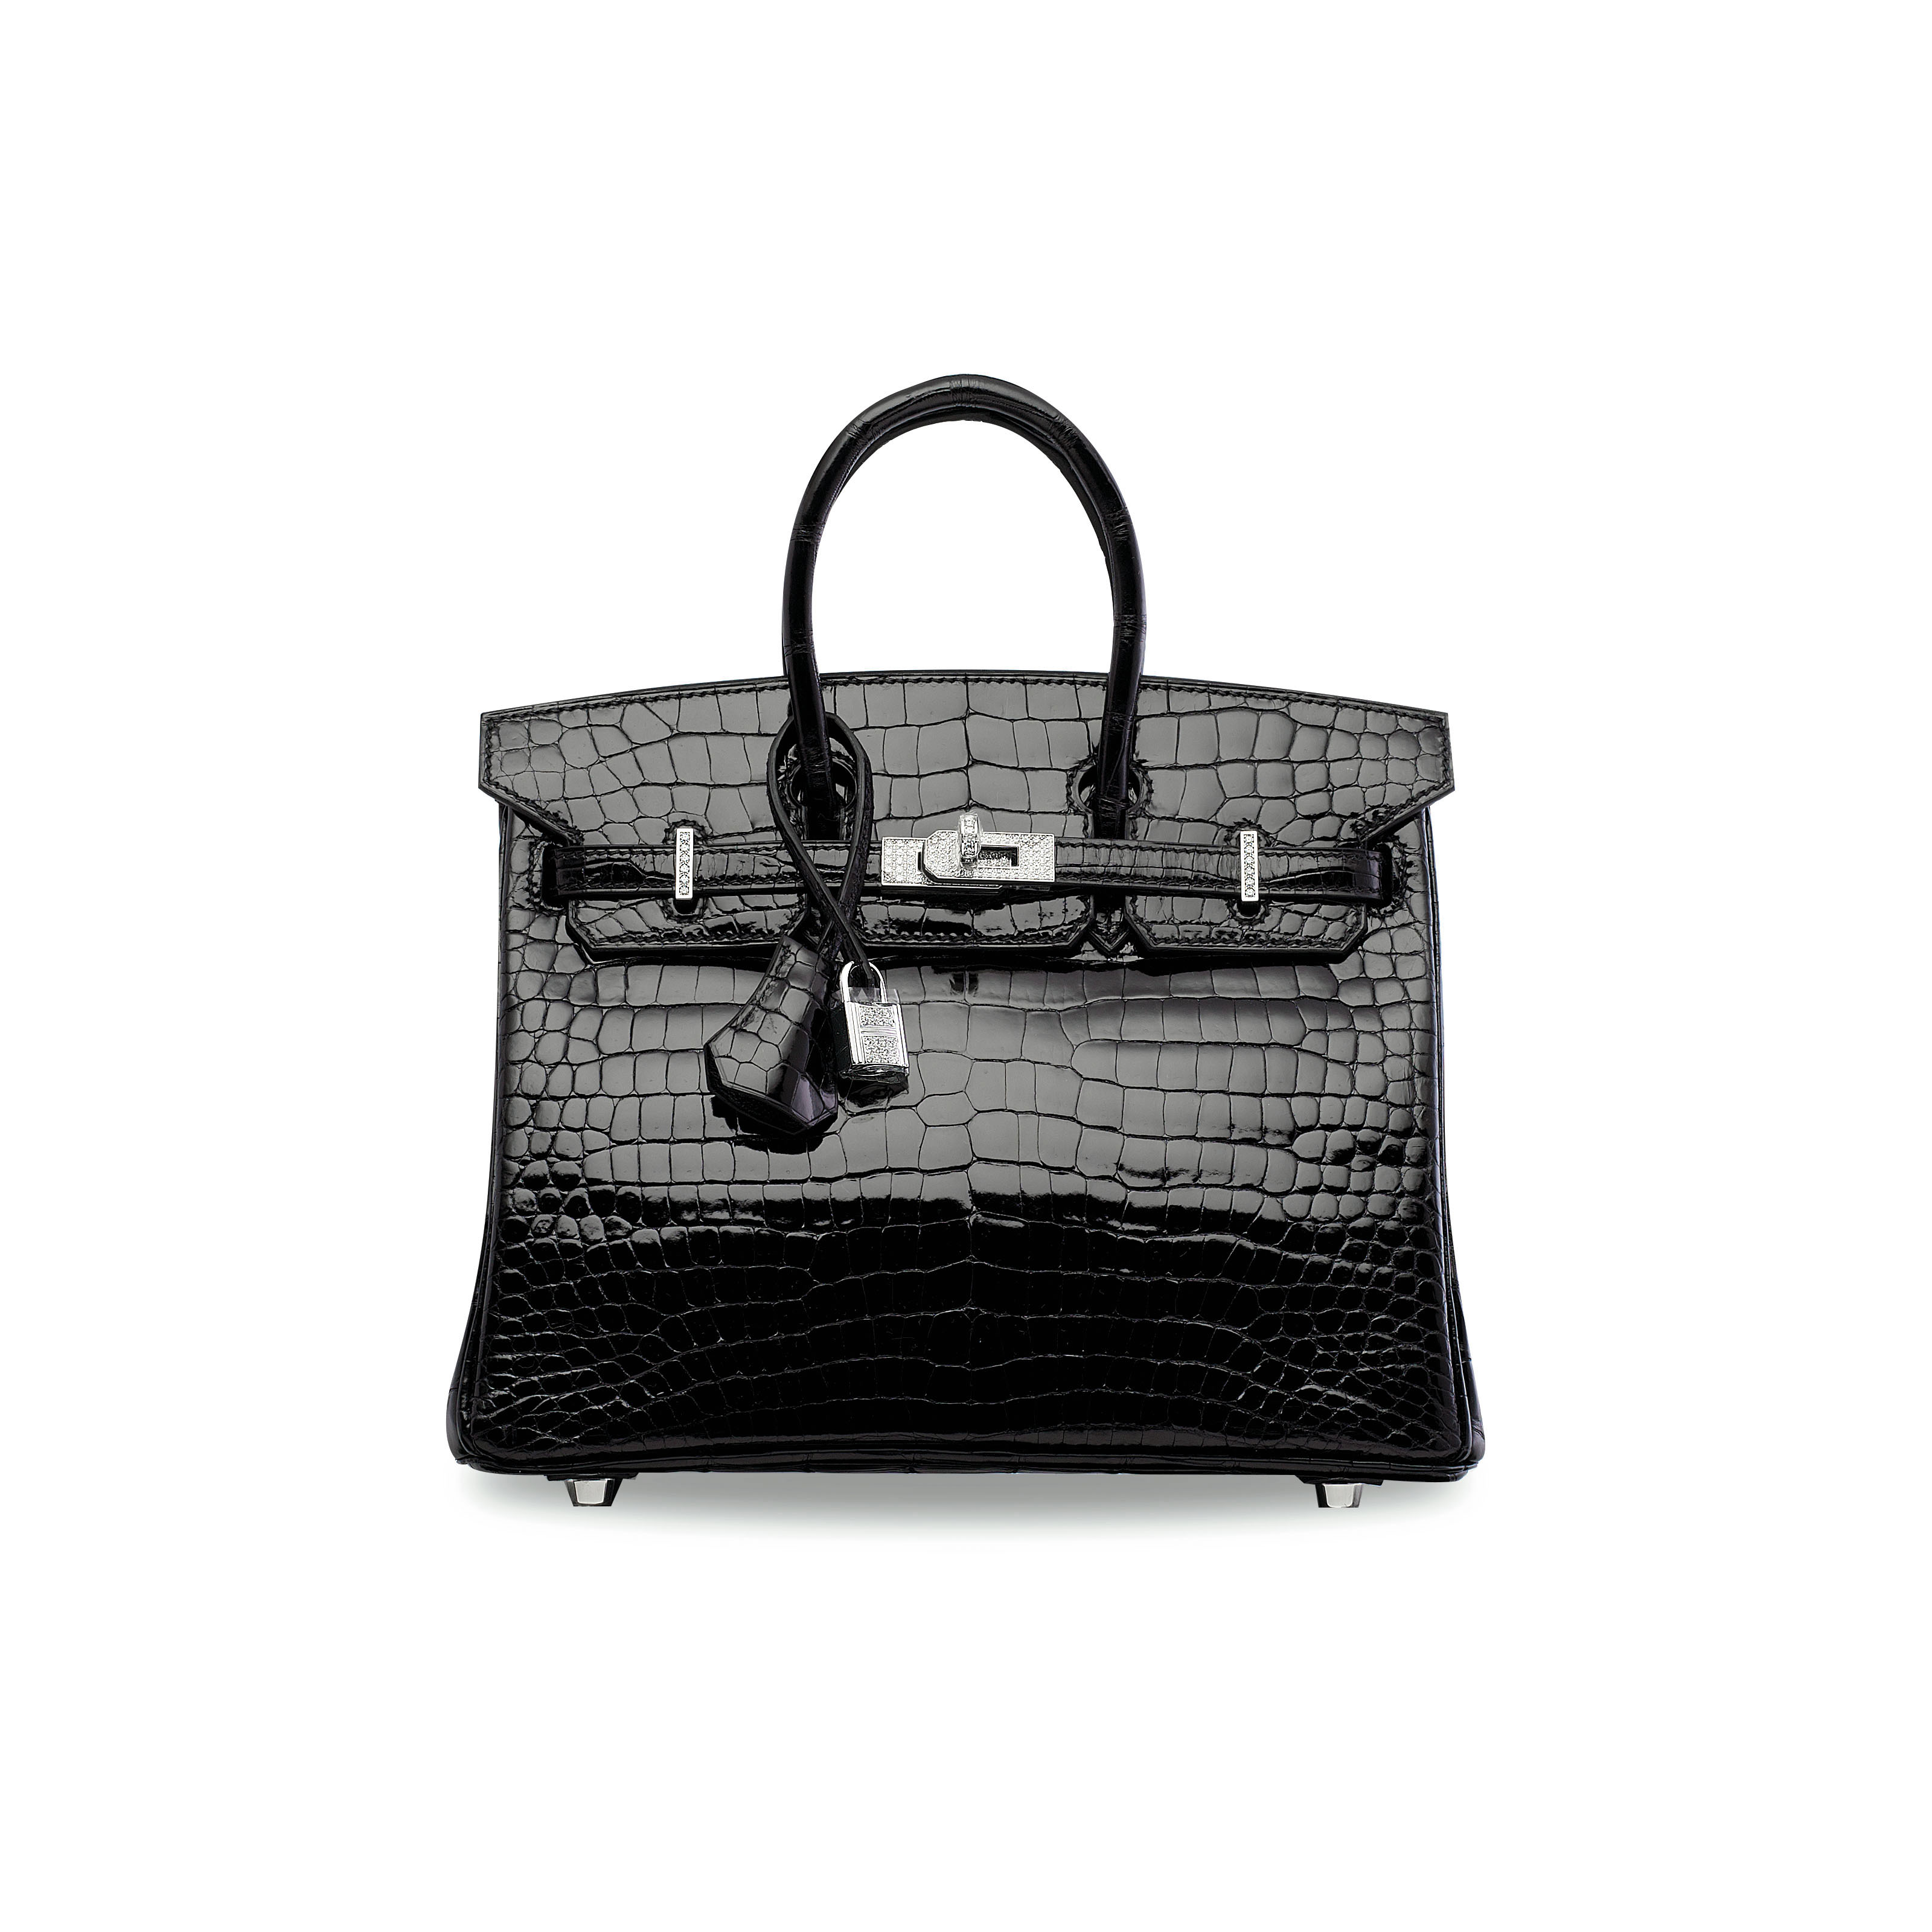 AN EXCEPTIONAL, SHINY BLACK POROSUS CROCODILE DIAMOND BIRKIN 25 WITH 18K WHITE GOLD & DIAMOND HARDWARE